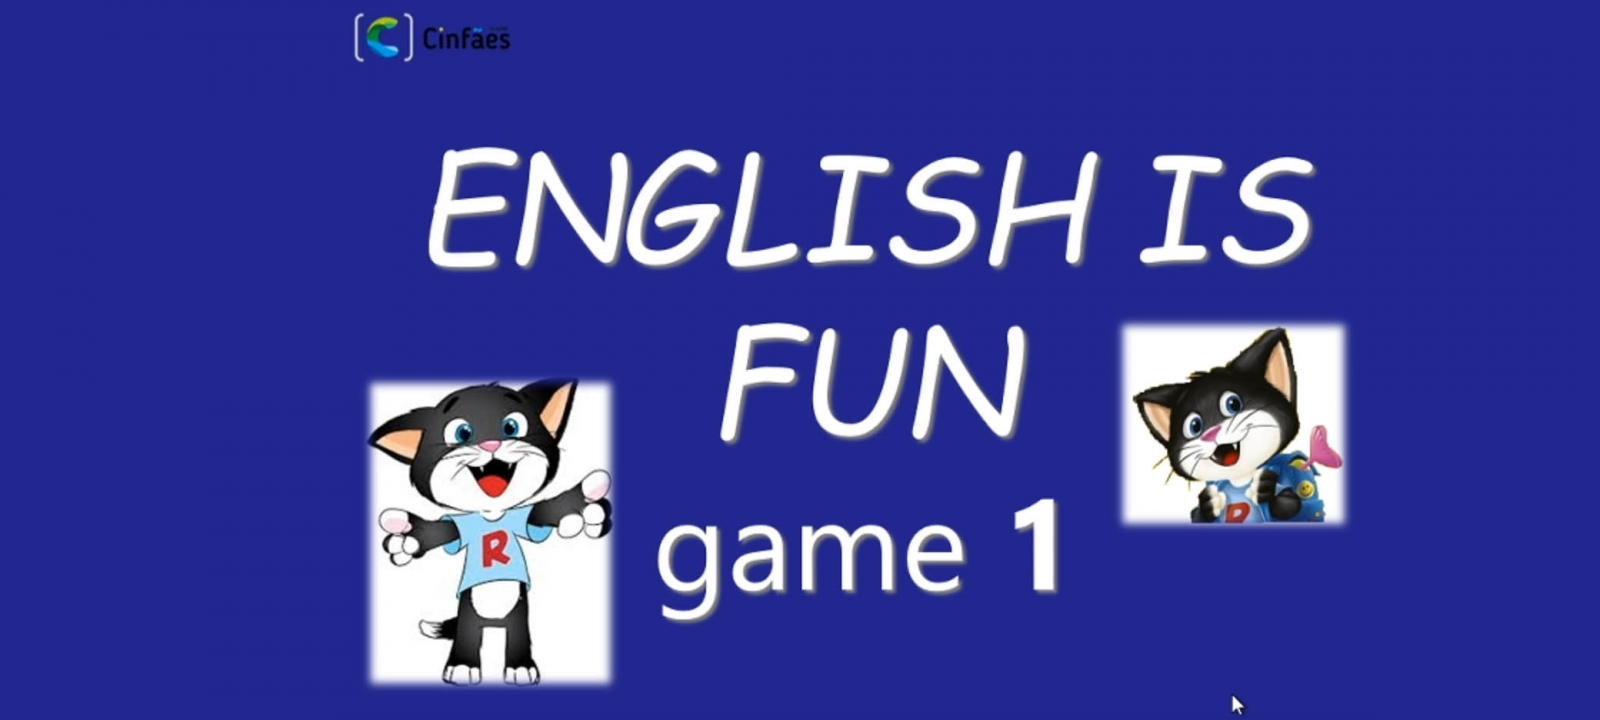 English is fun! - game 1